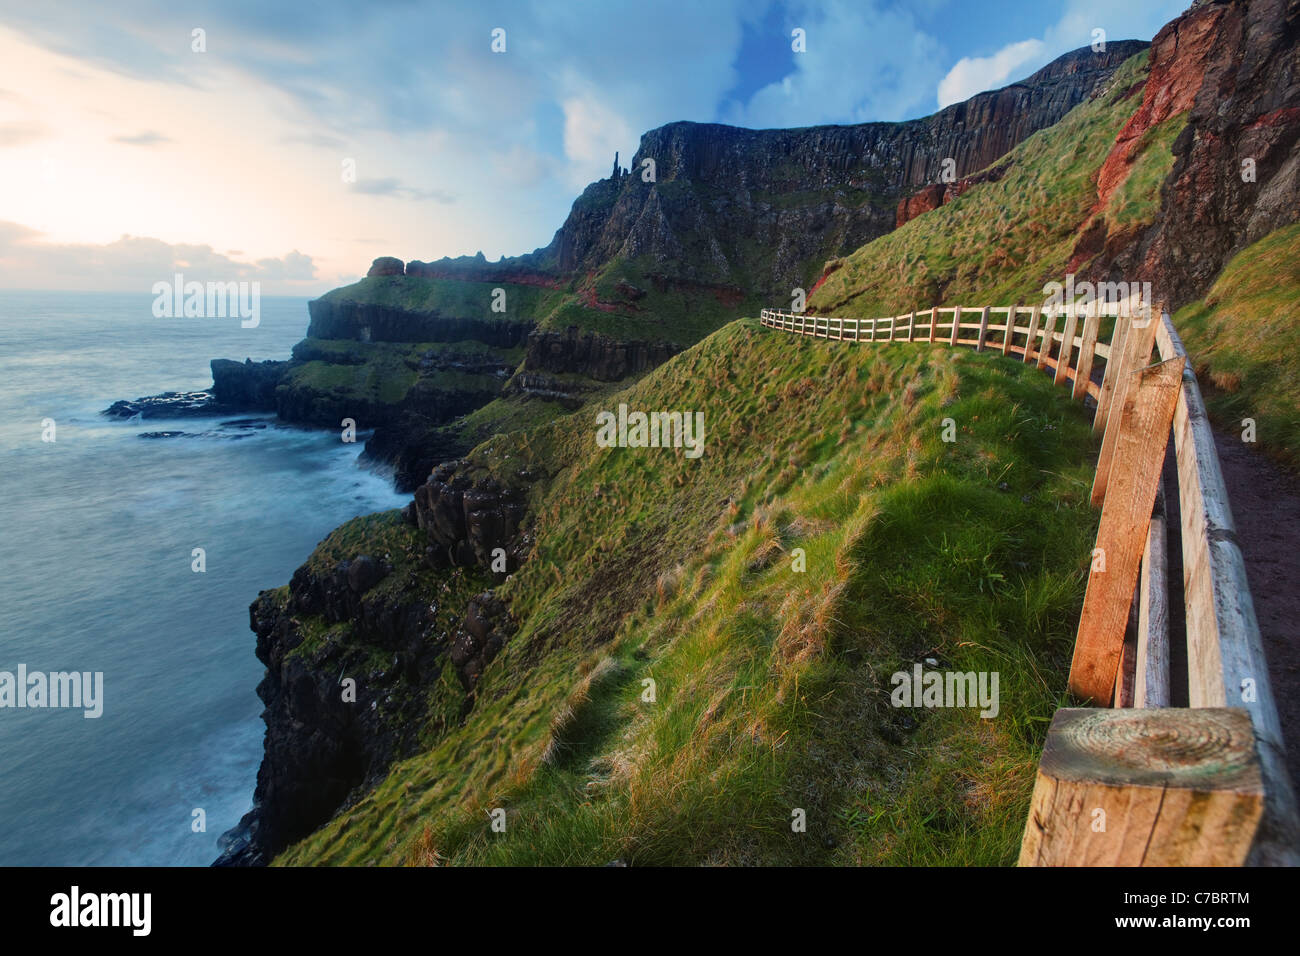 Fenced cliffside trail on Benbane Head near sunset, Giant's Causeway, County Antrim, Northern Ireland, United - Stock Image